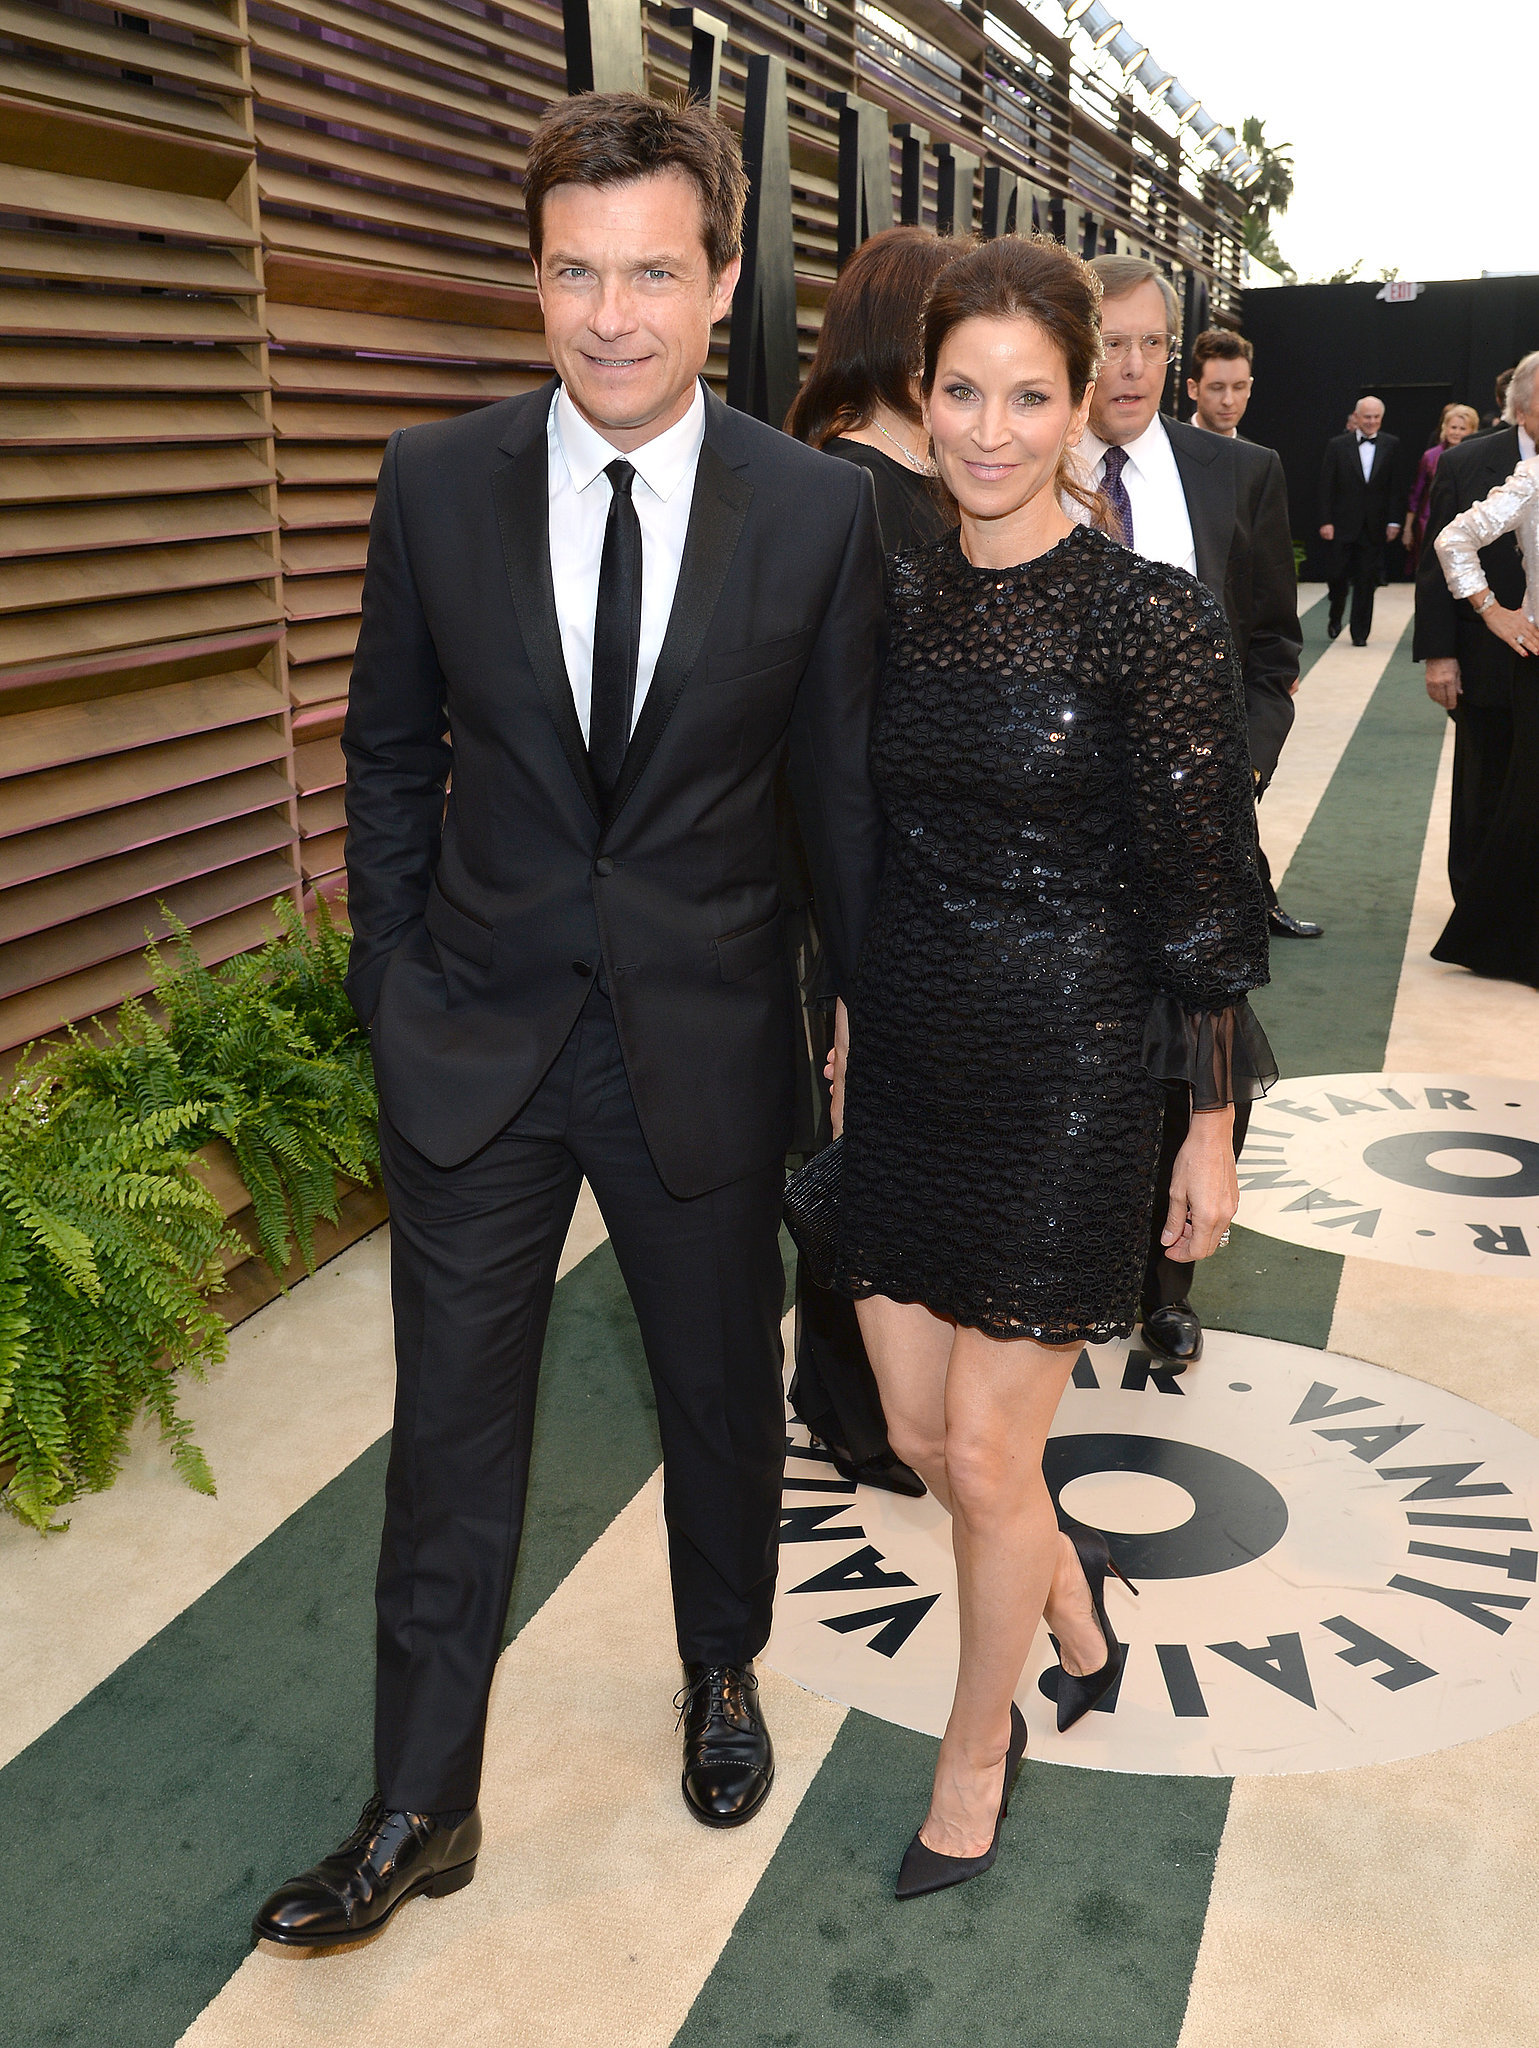 Jason Bateman and his wife, Amanda Anka, wore black.